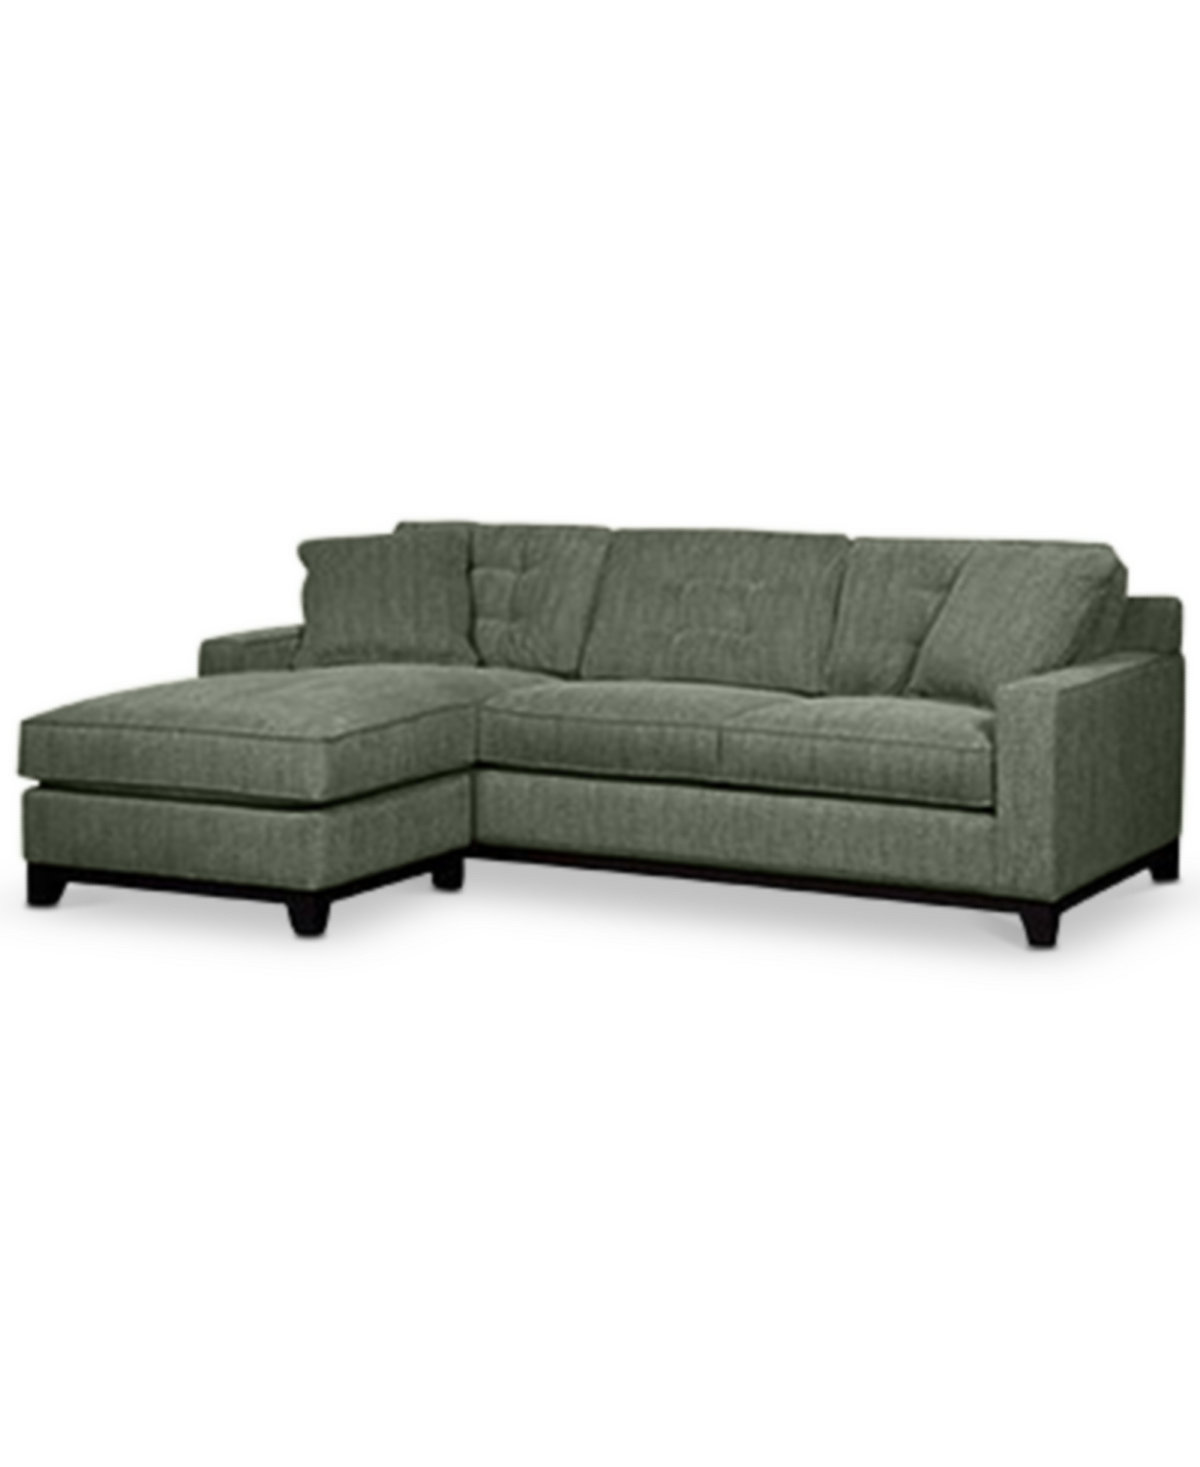 clarke fabric queen sleeper sofa bed velour 2 piece sectional